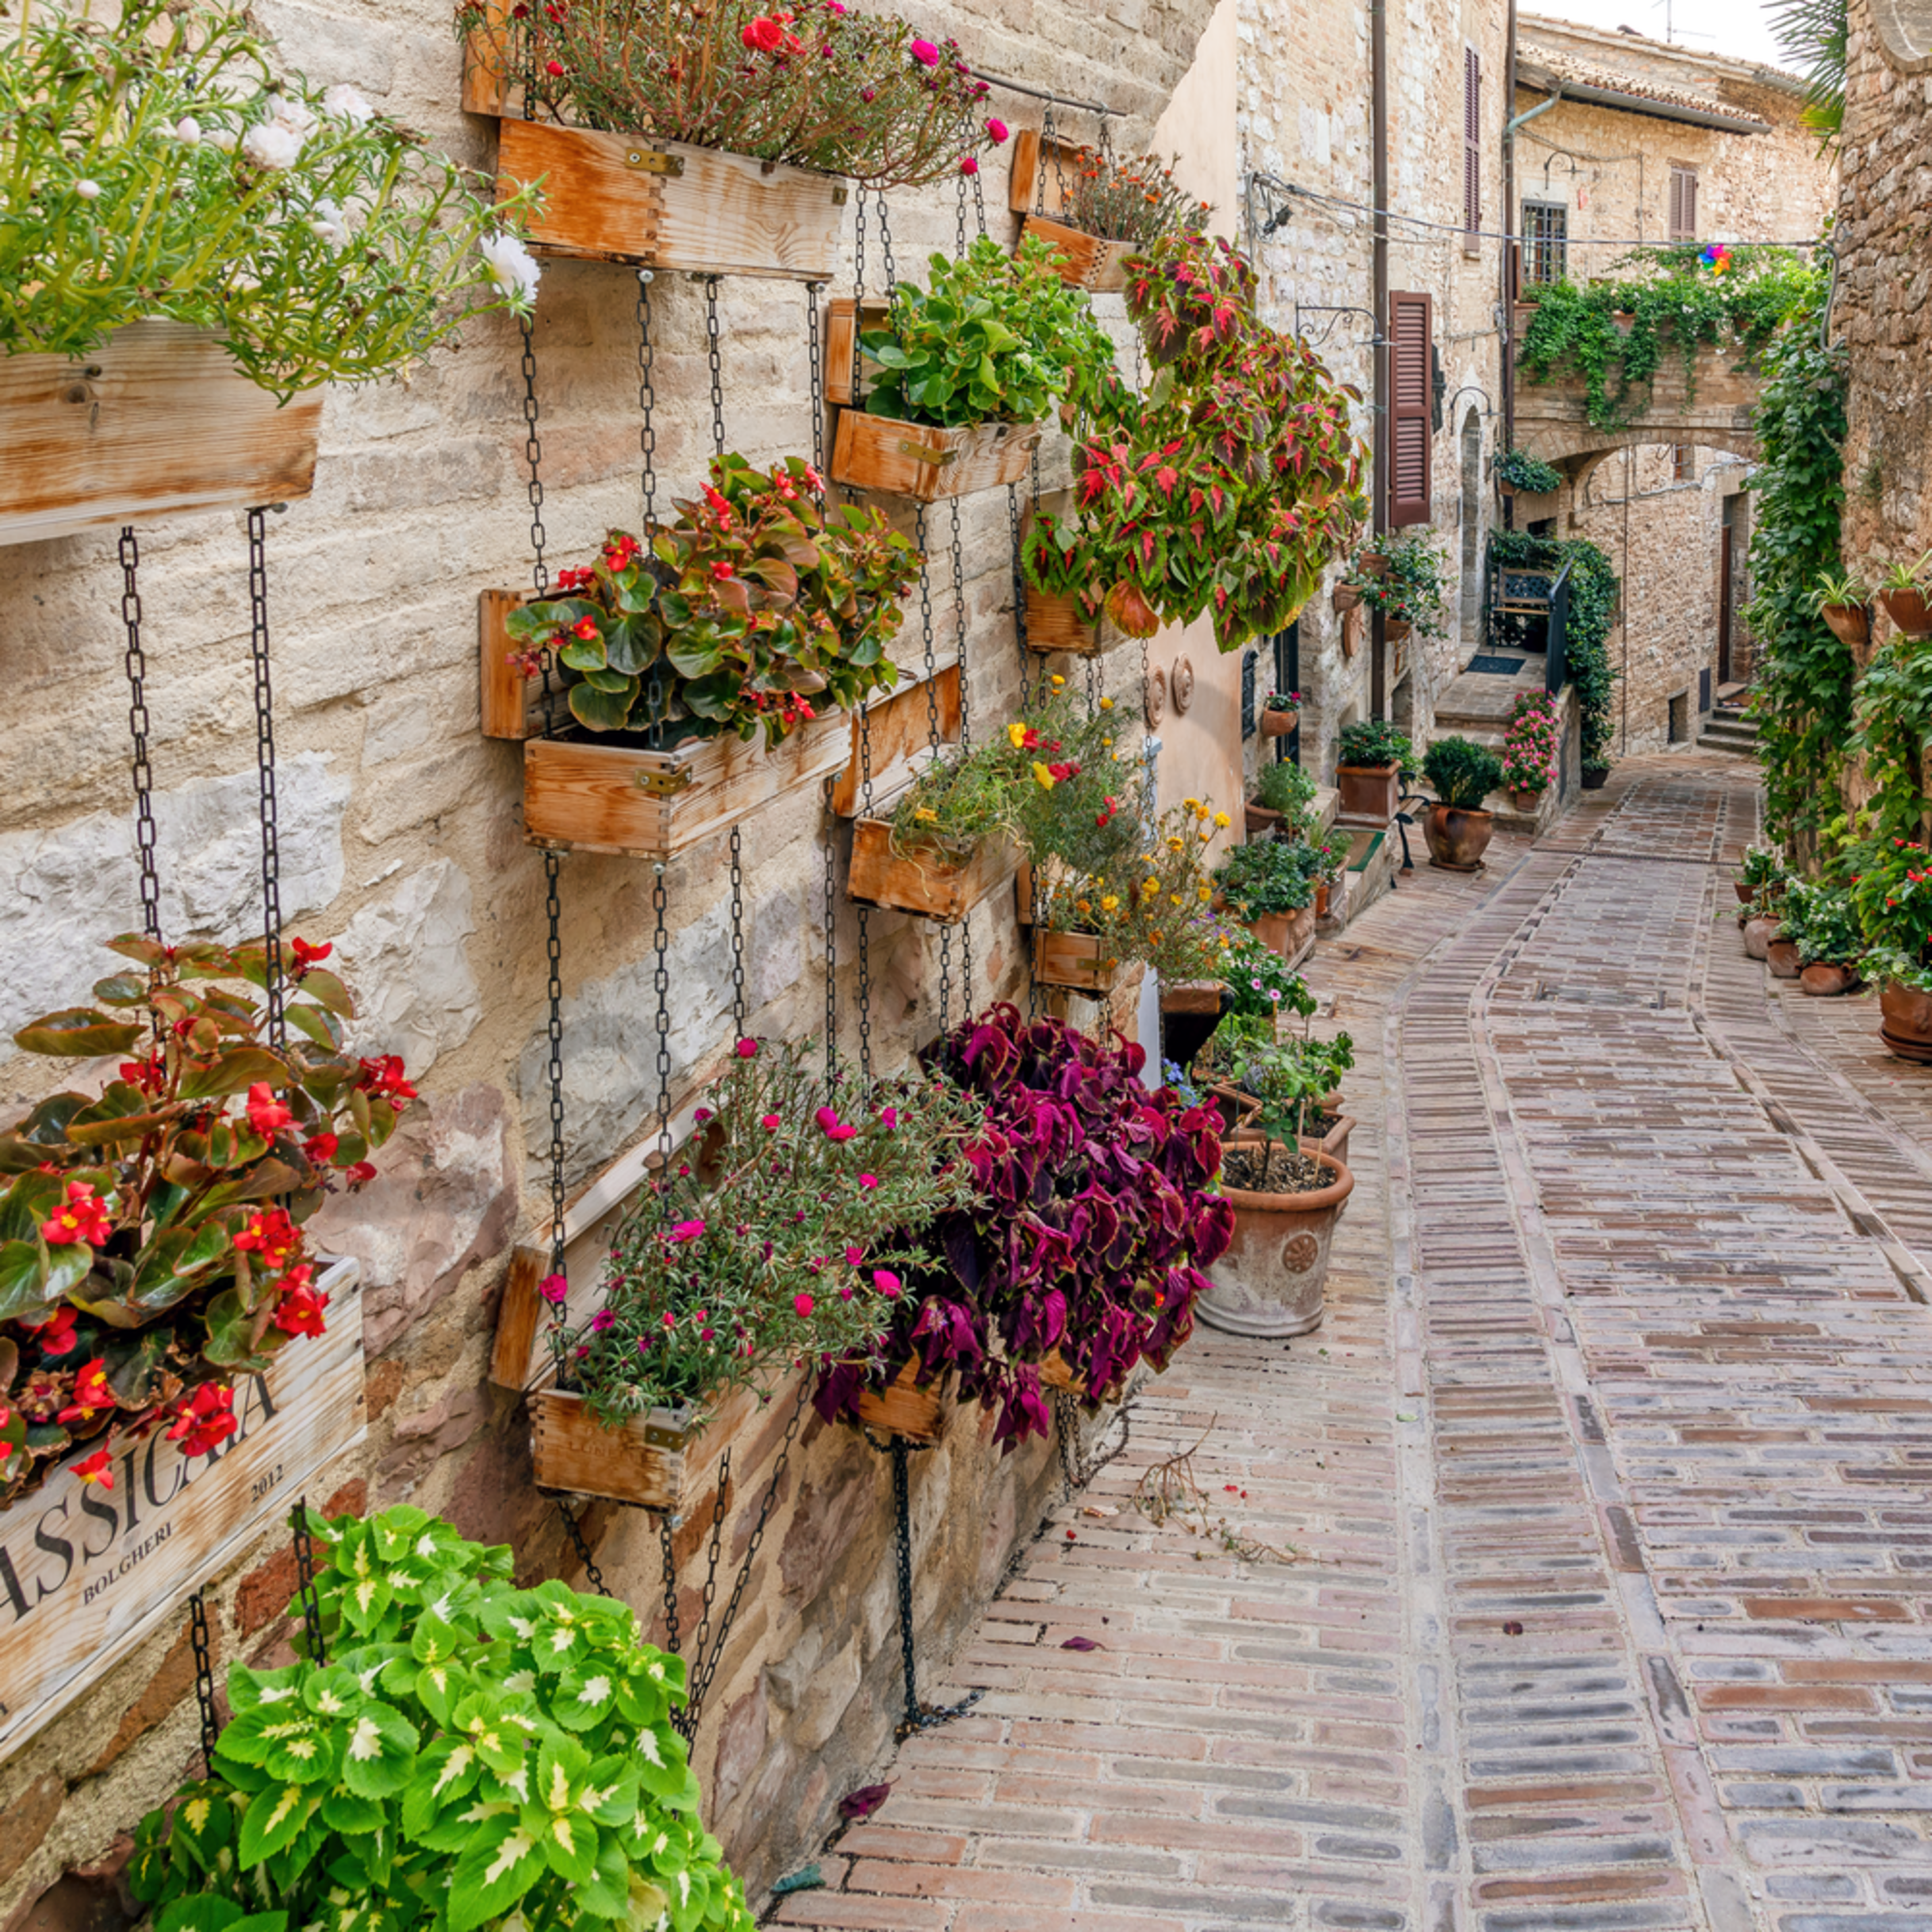 Wall flowers and street spello italy ithopw